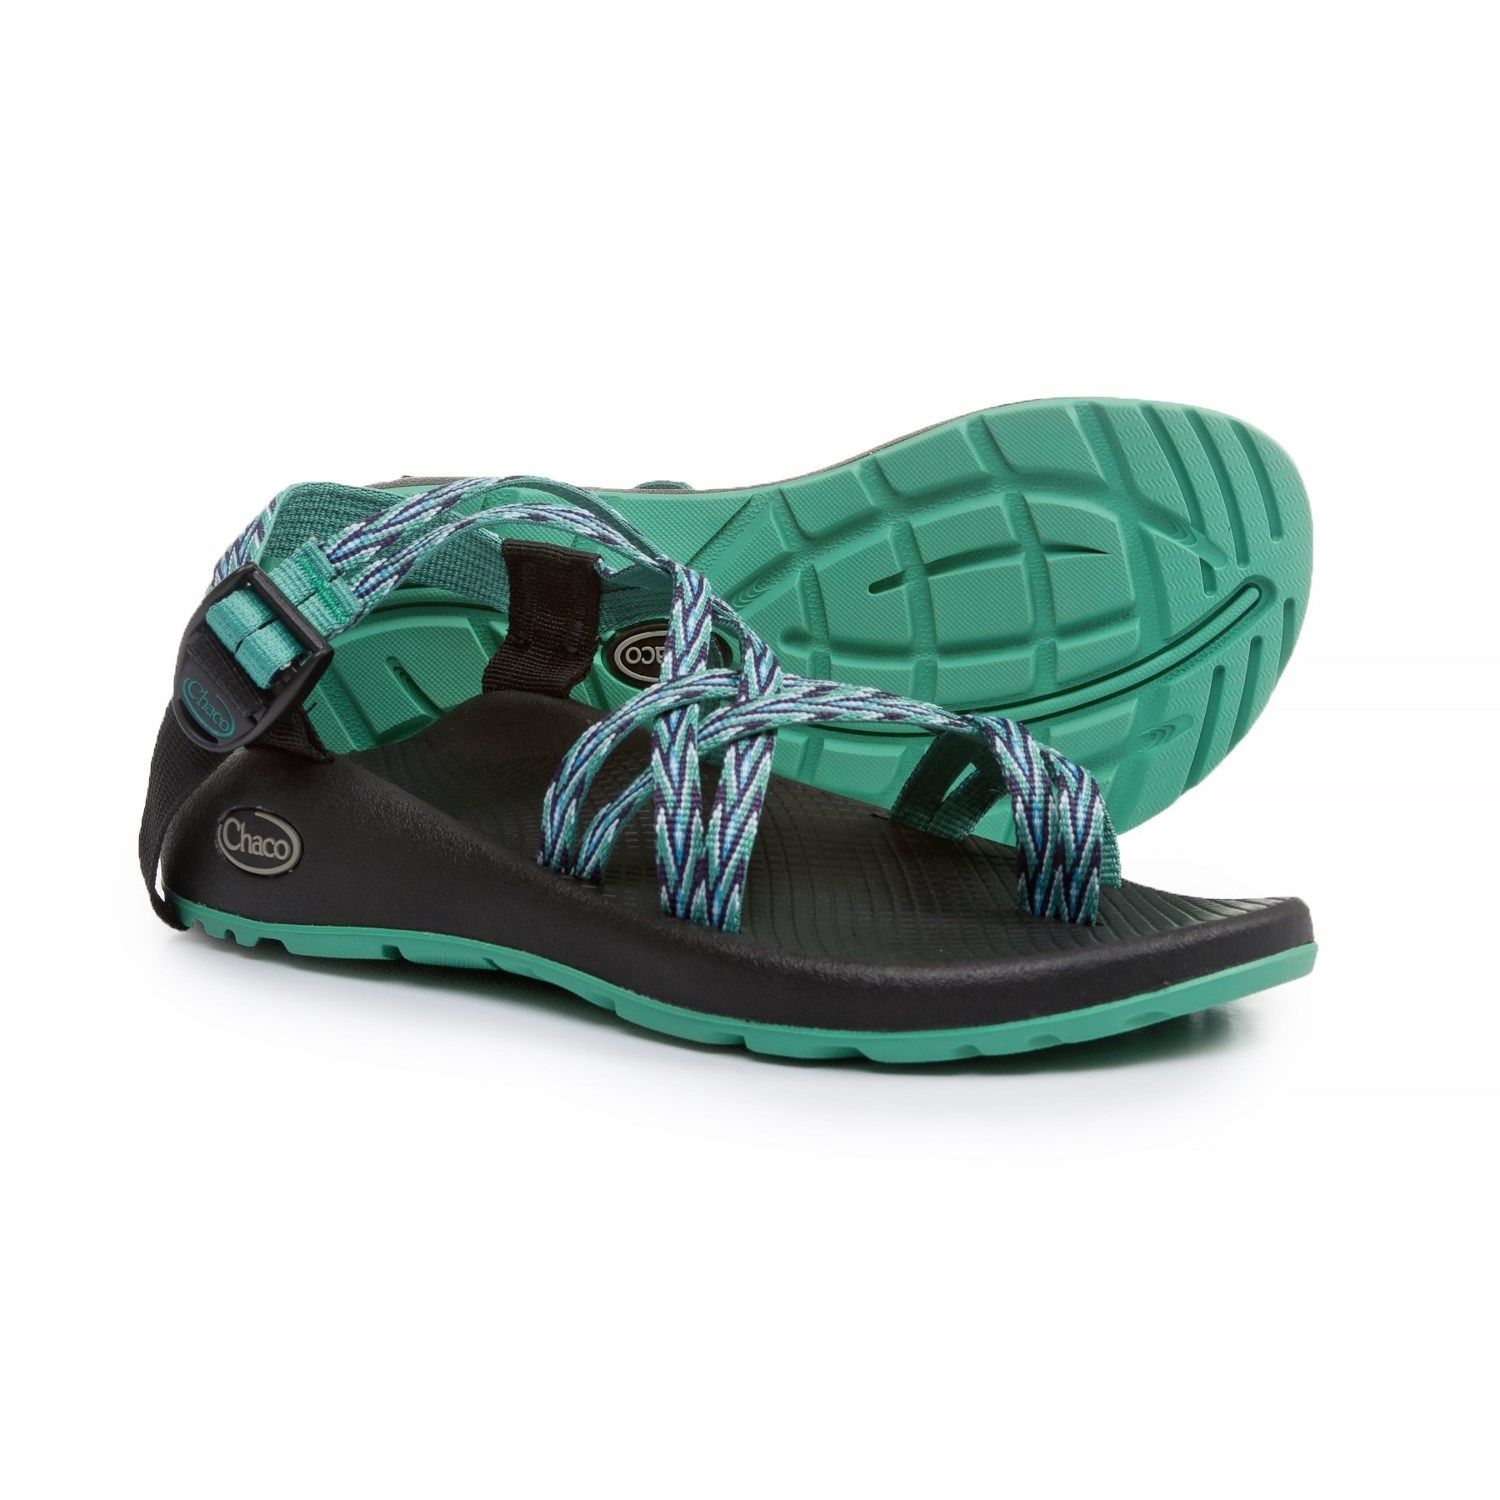 141dc9abe9c Chaco ZX 2® Classic Sport Sandals (For Women) - Save 42%